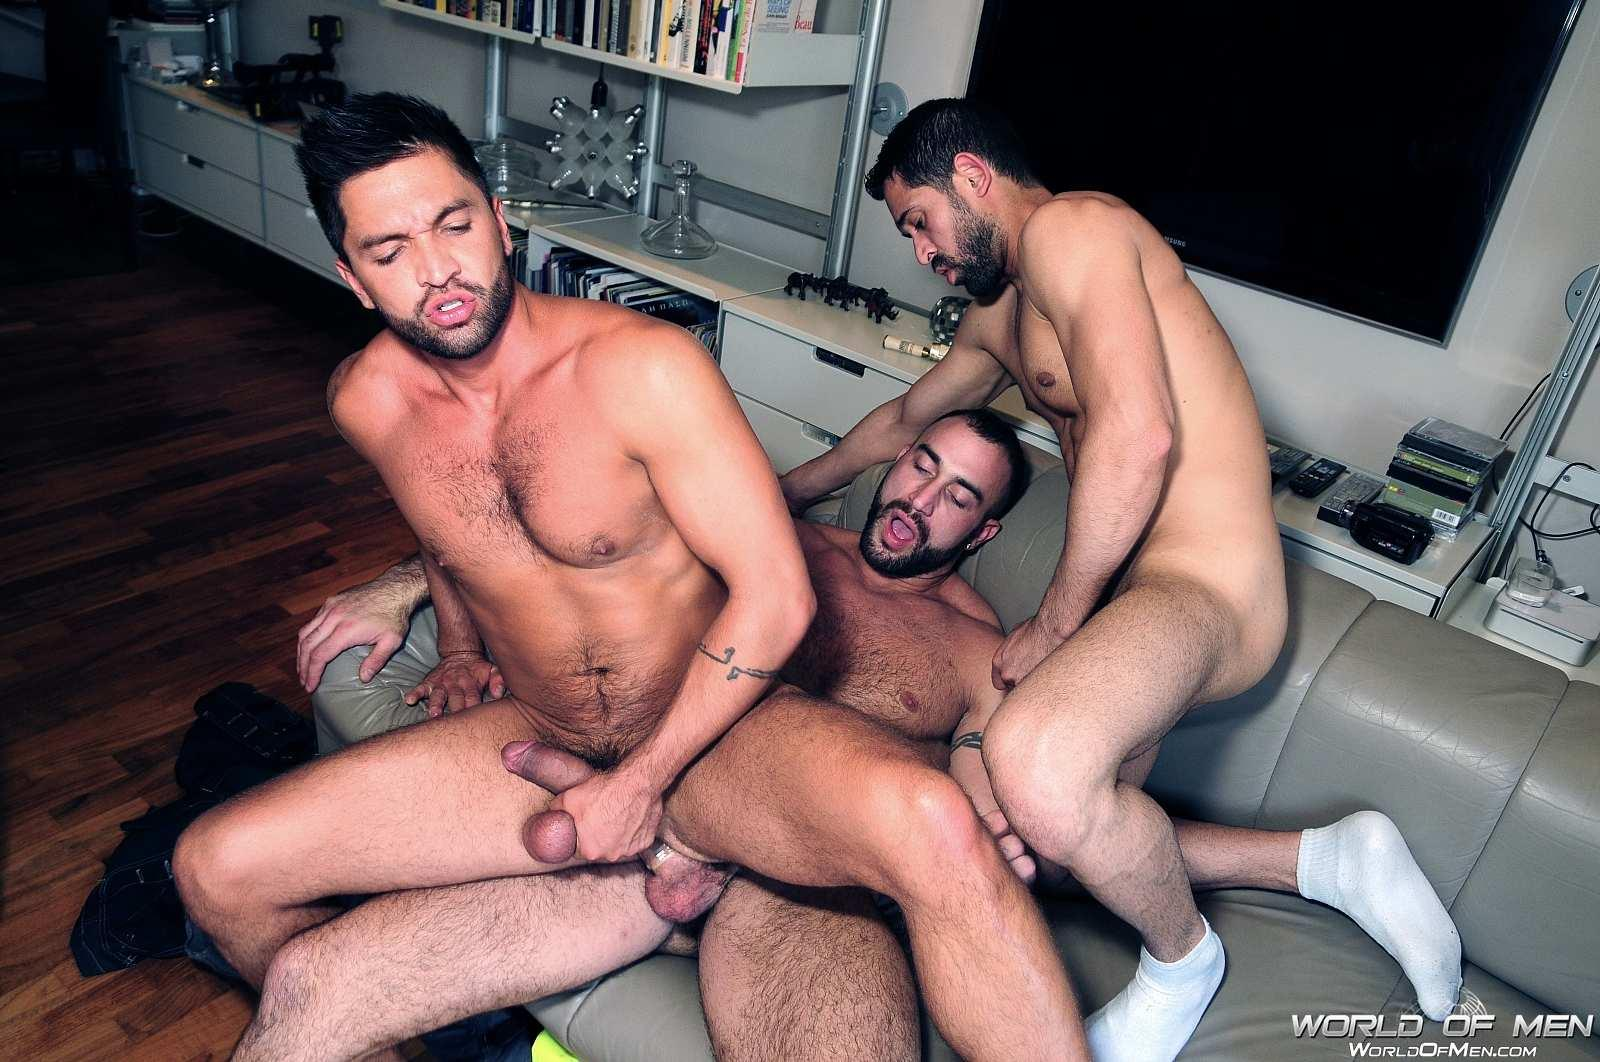 World Of Men Spencer Reed and Dominic Pacifico and Billy Baval Taking Two Huge Cocks Up The Ass Tagteam Amateur Gay Porn 19 Dominic Pacifico Getting Tag Teamed By Two Huge Cocks